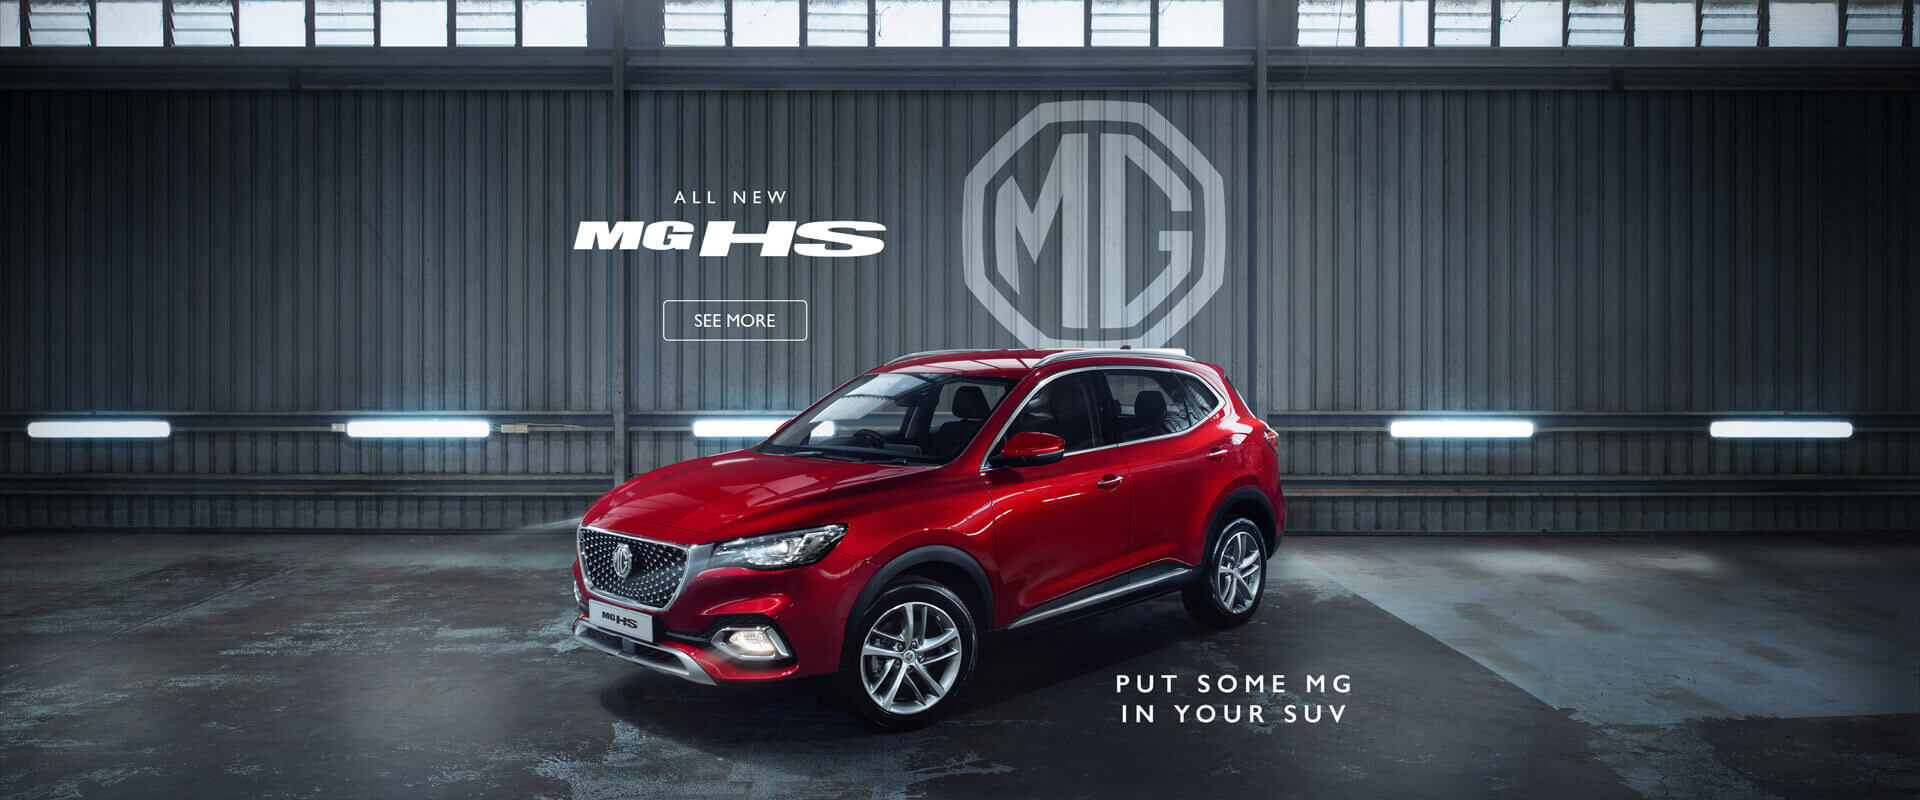 Everything you want in an SUV. Now in an MG. The all new MG HS